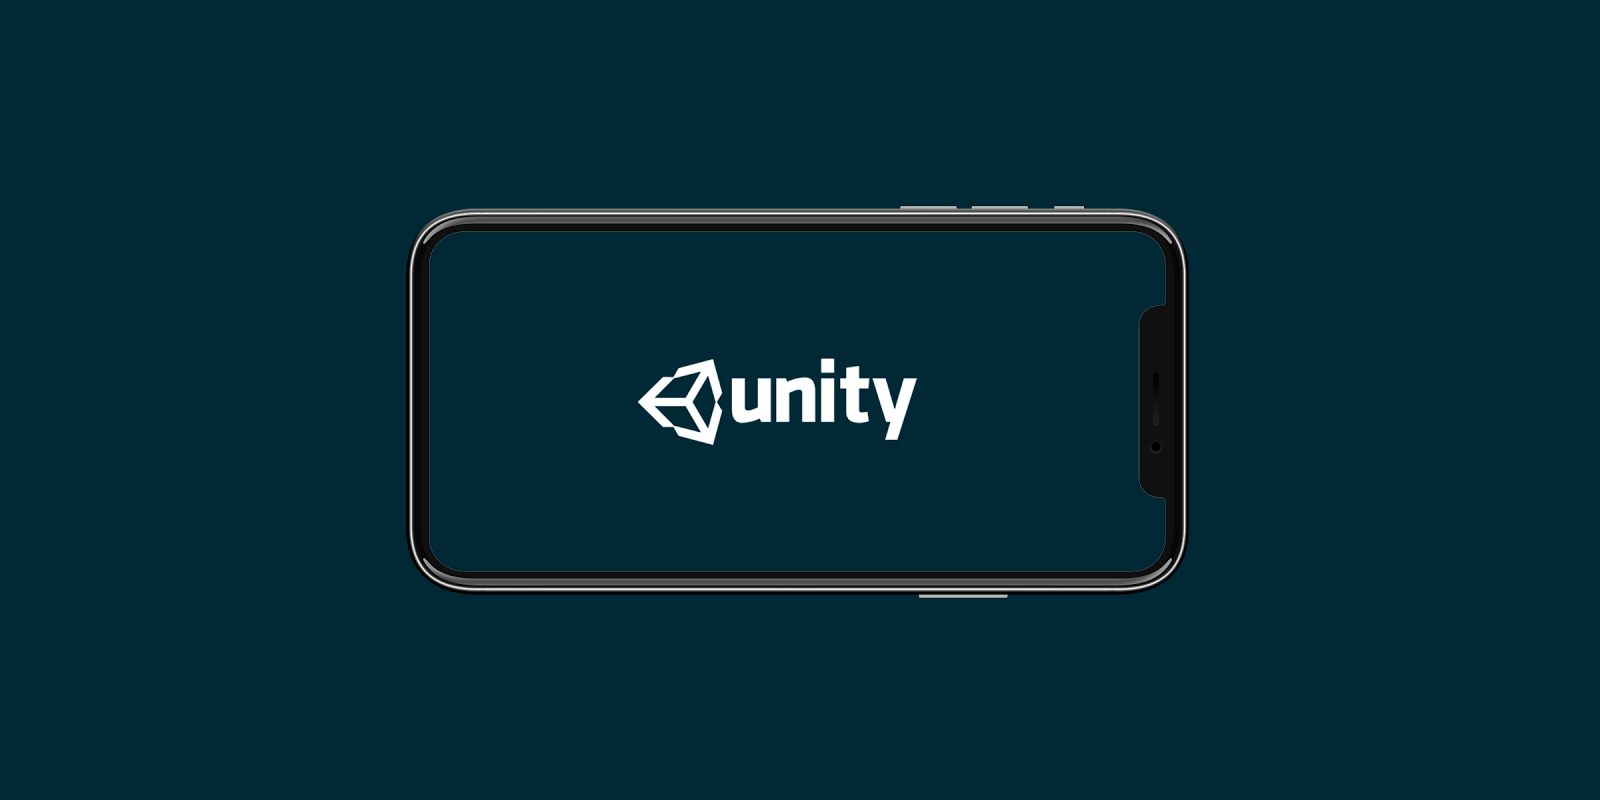 Unity — How to Build a Bridge: iOS to Unity with Swift